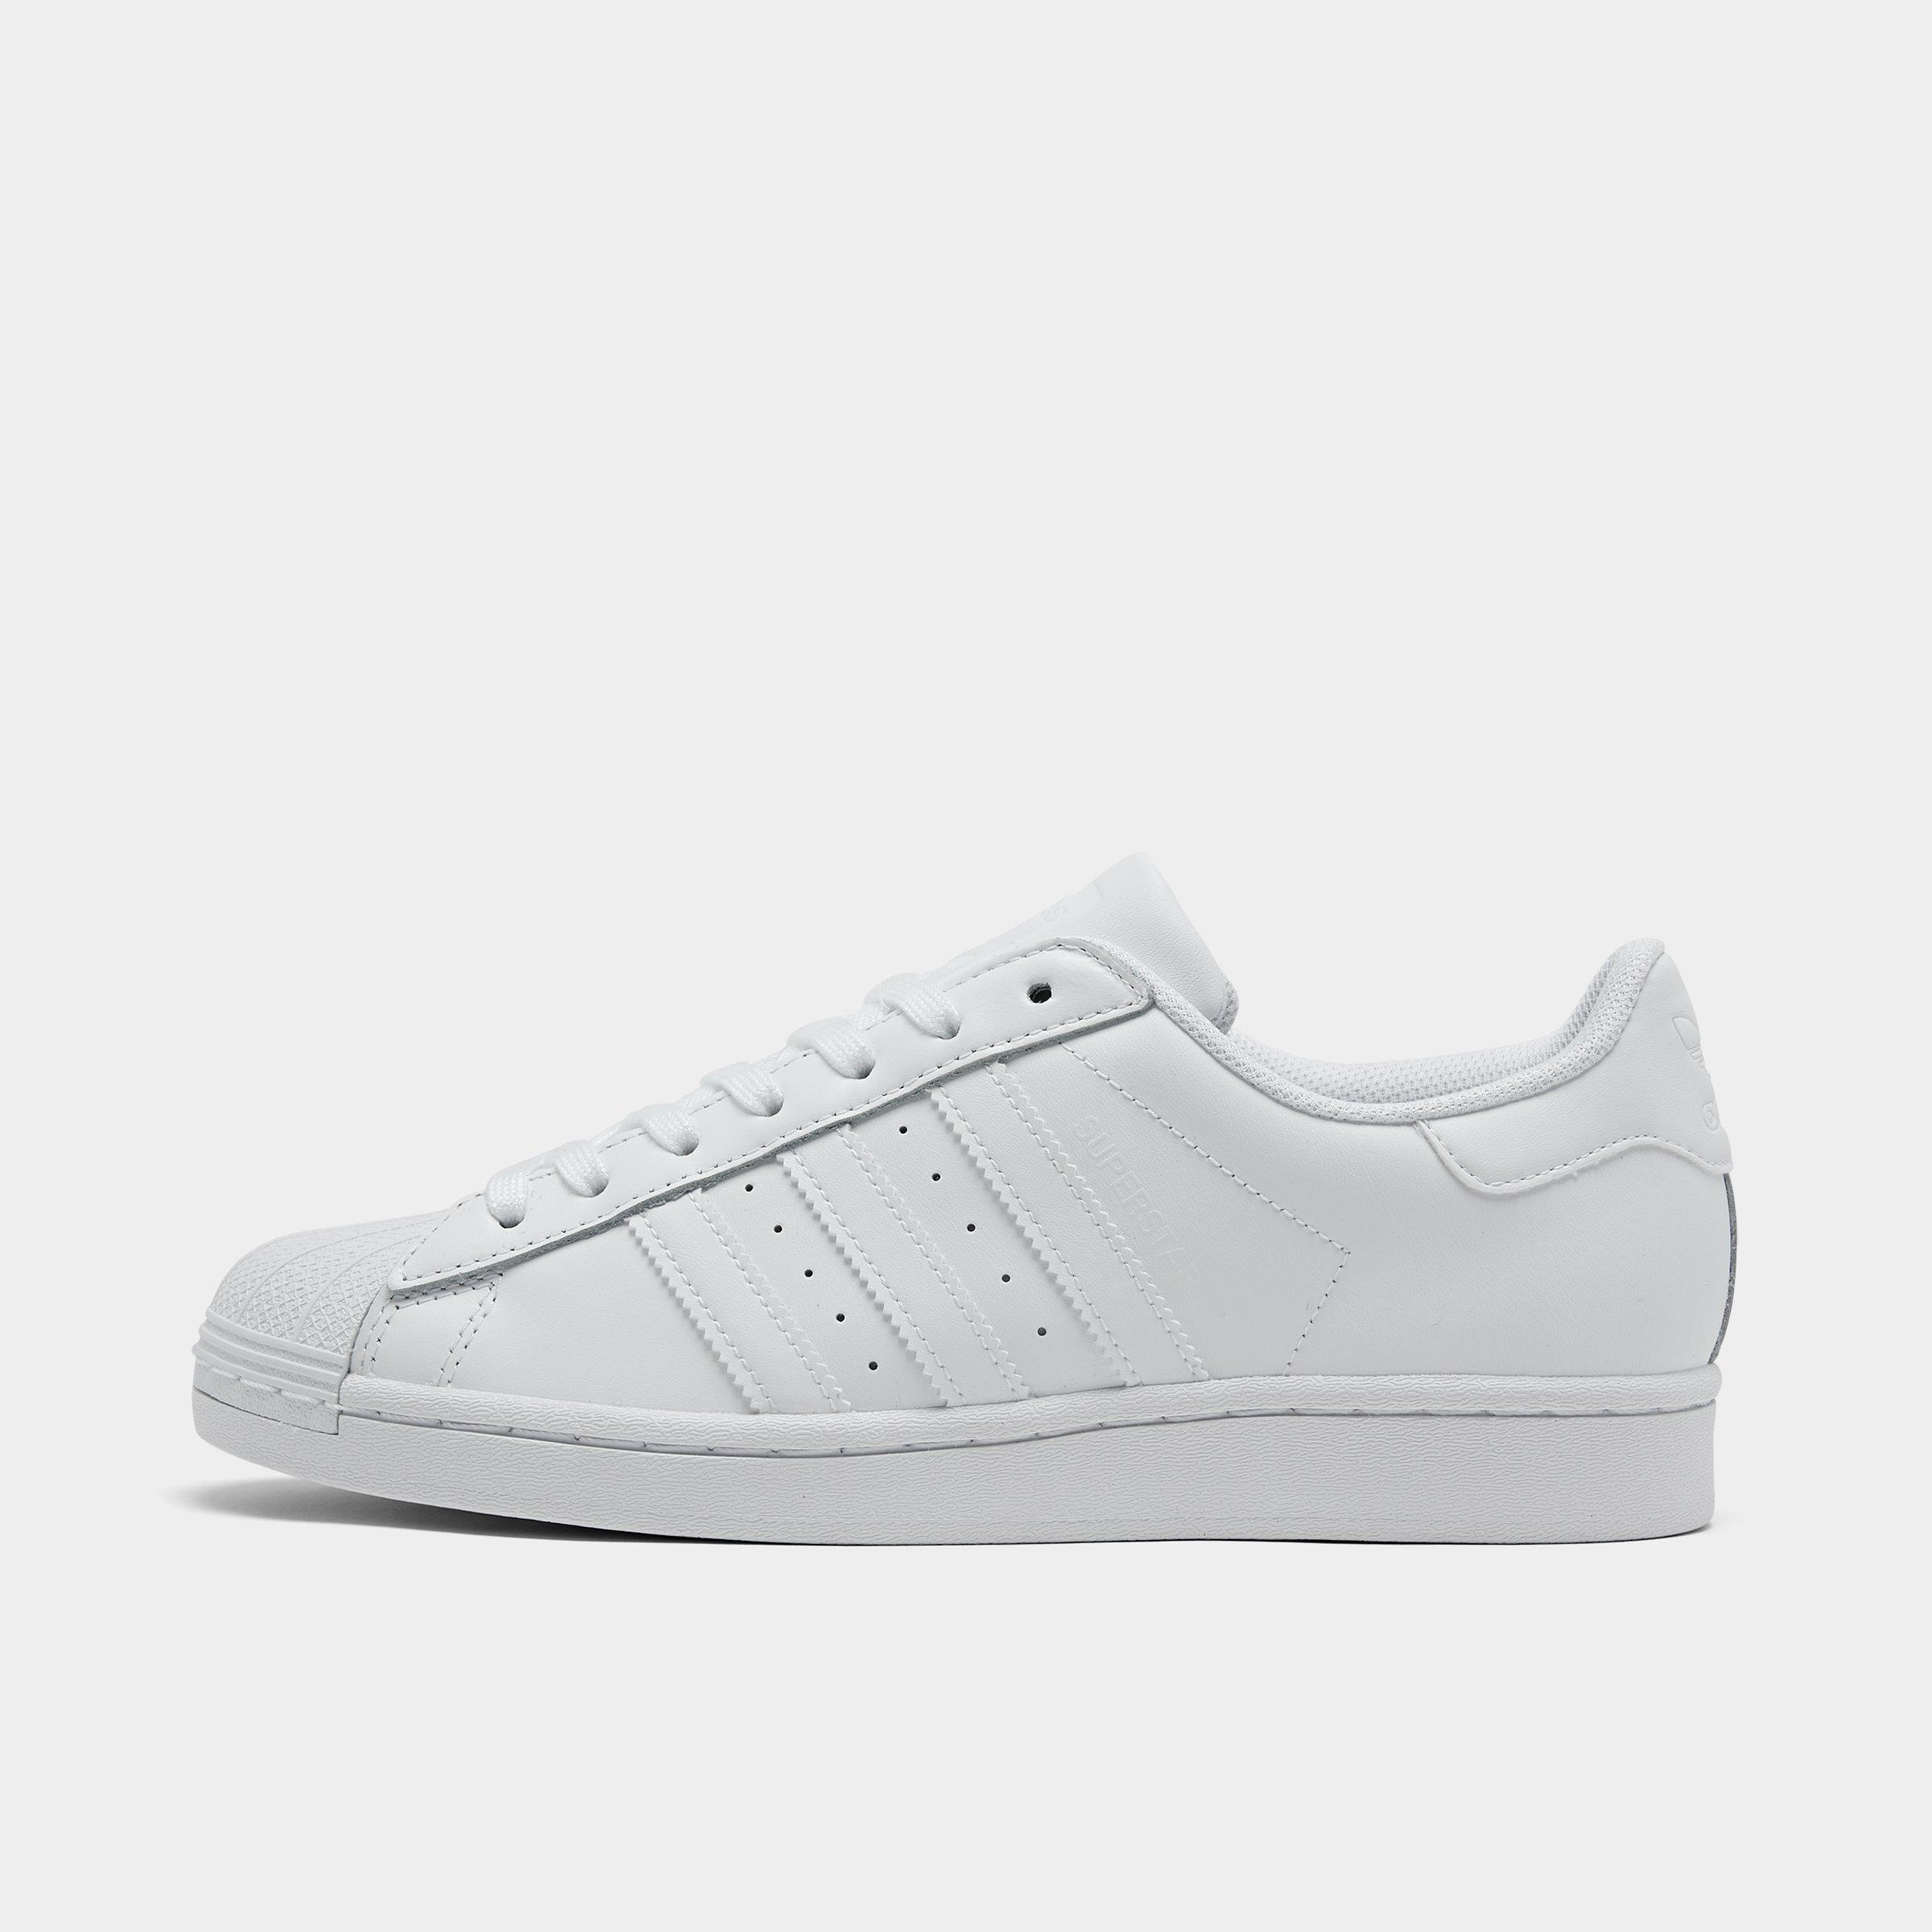 adidas superstar jd